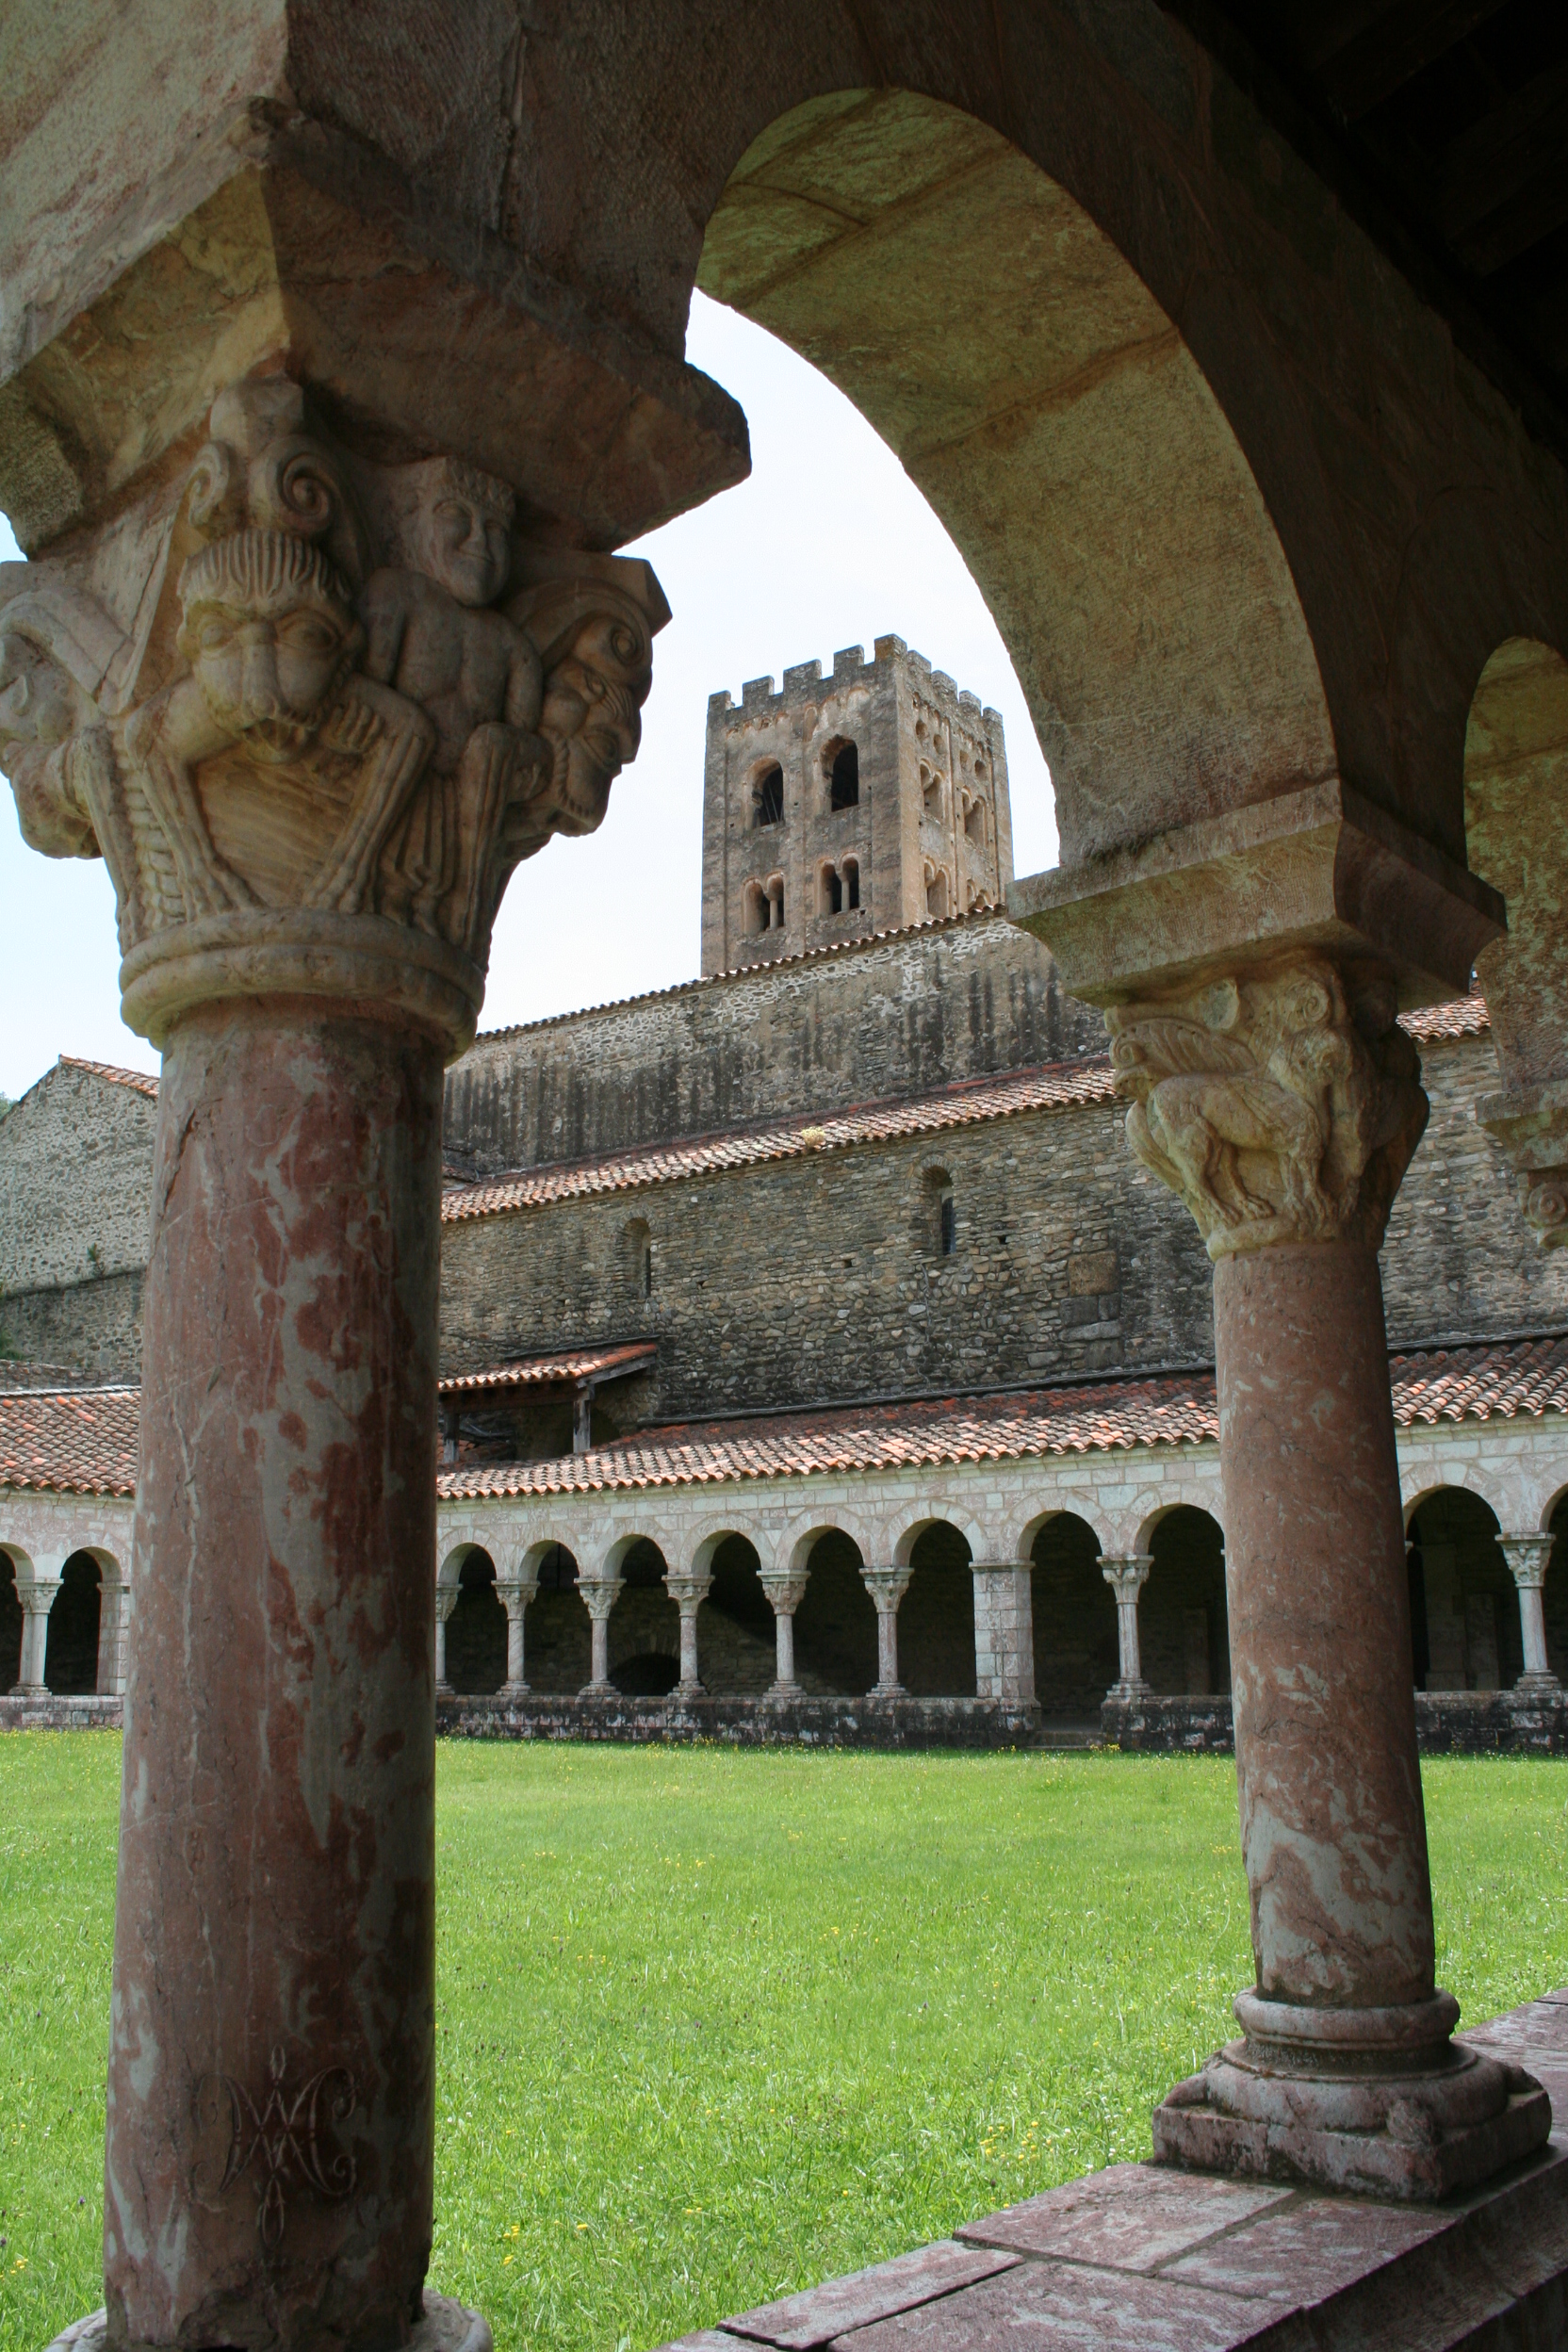 The cloisters and the church of Sant Miquel de Cuixà